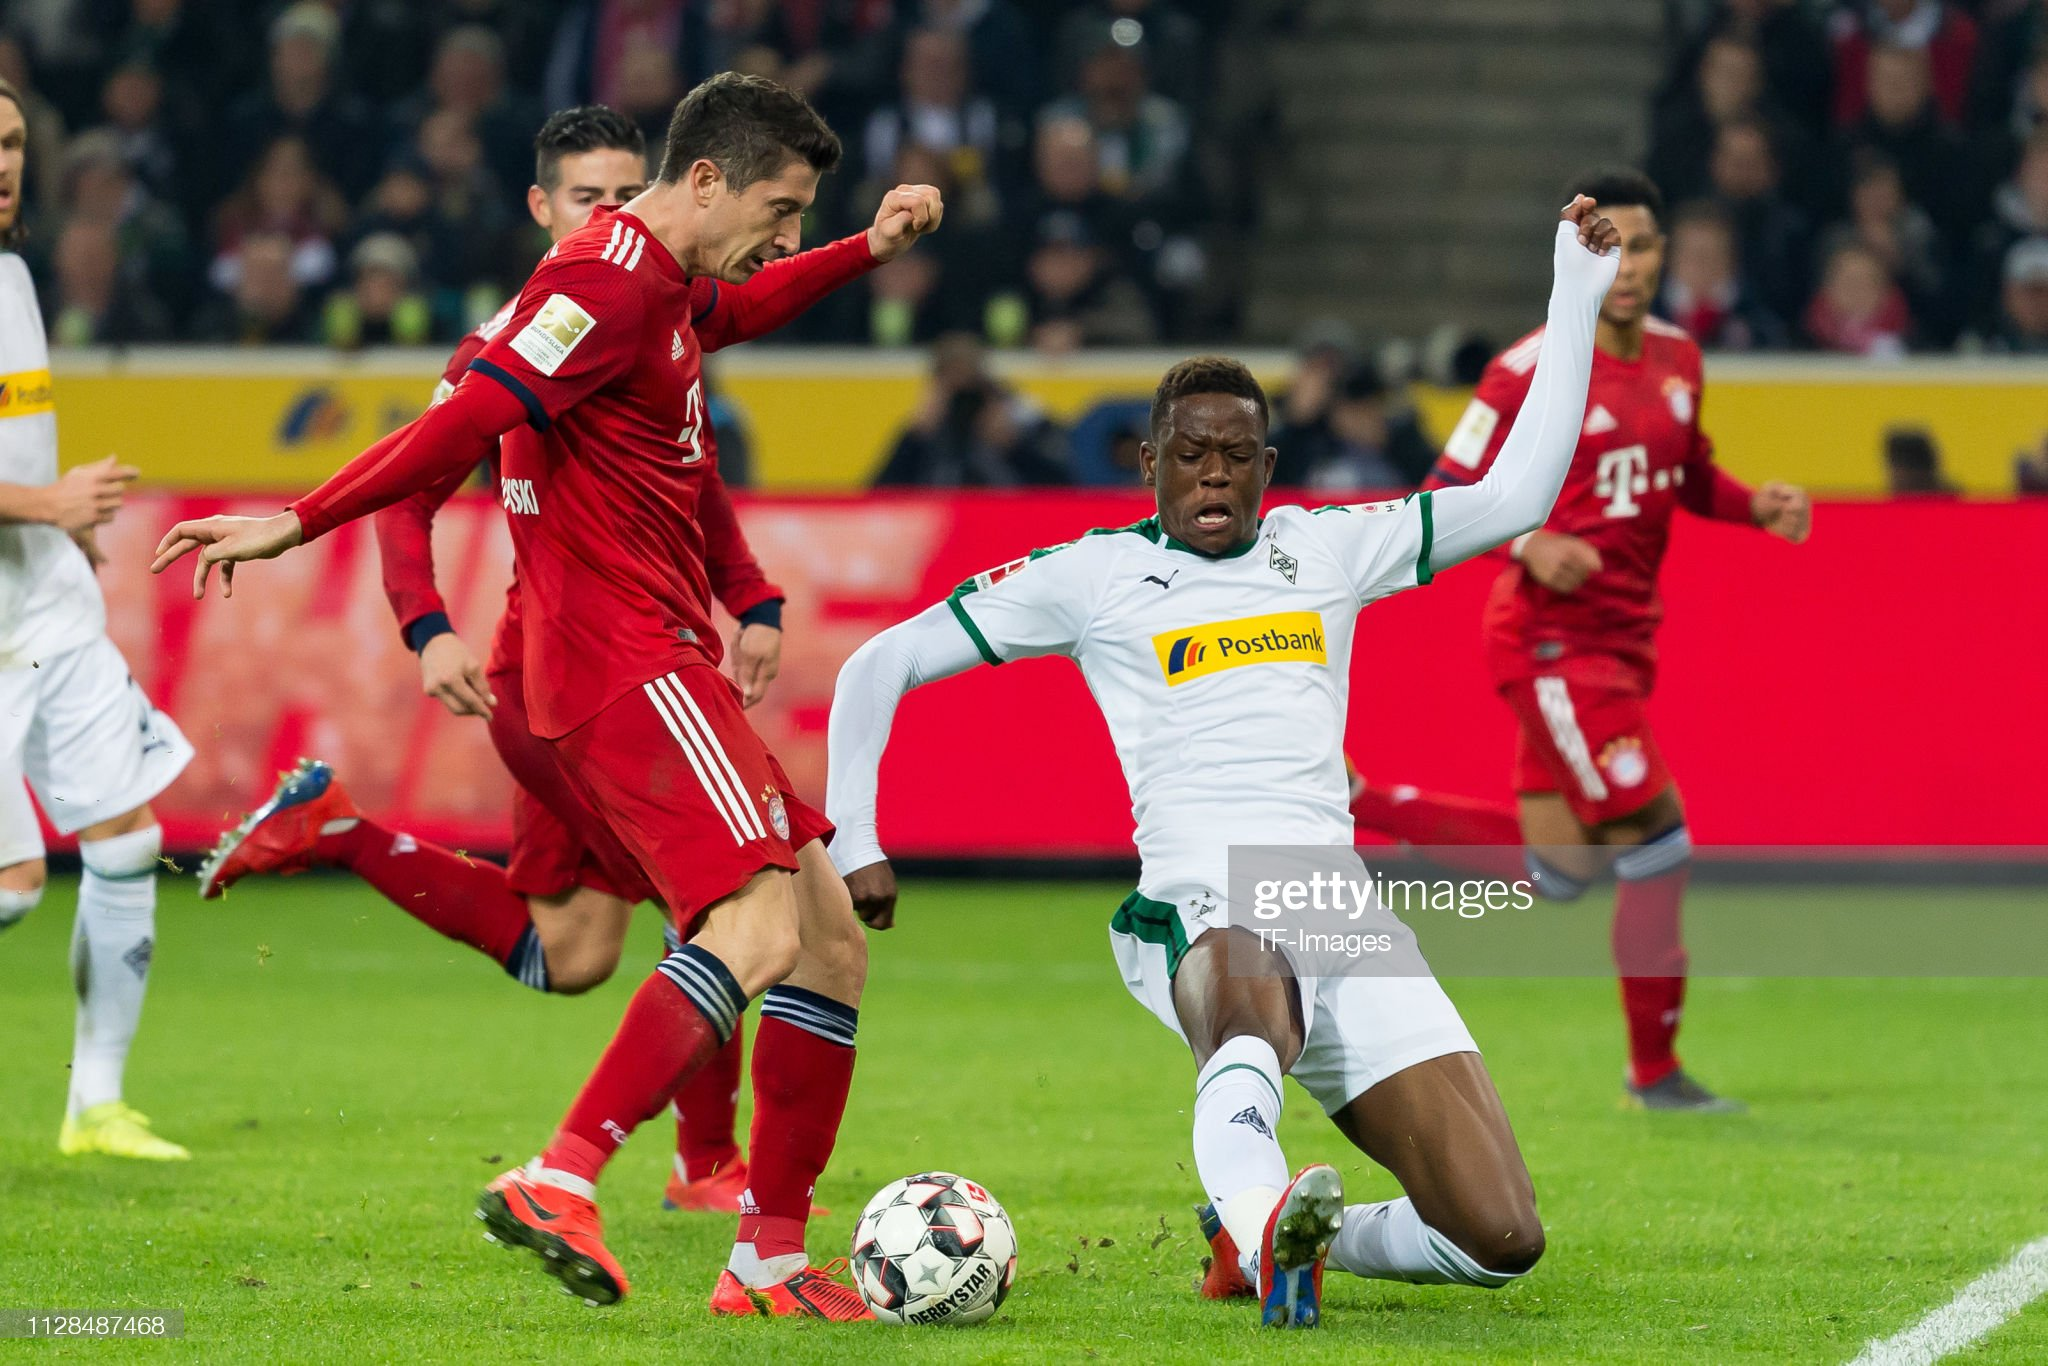 Monchengladbach v Bayern Munich preview, prediction and odds